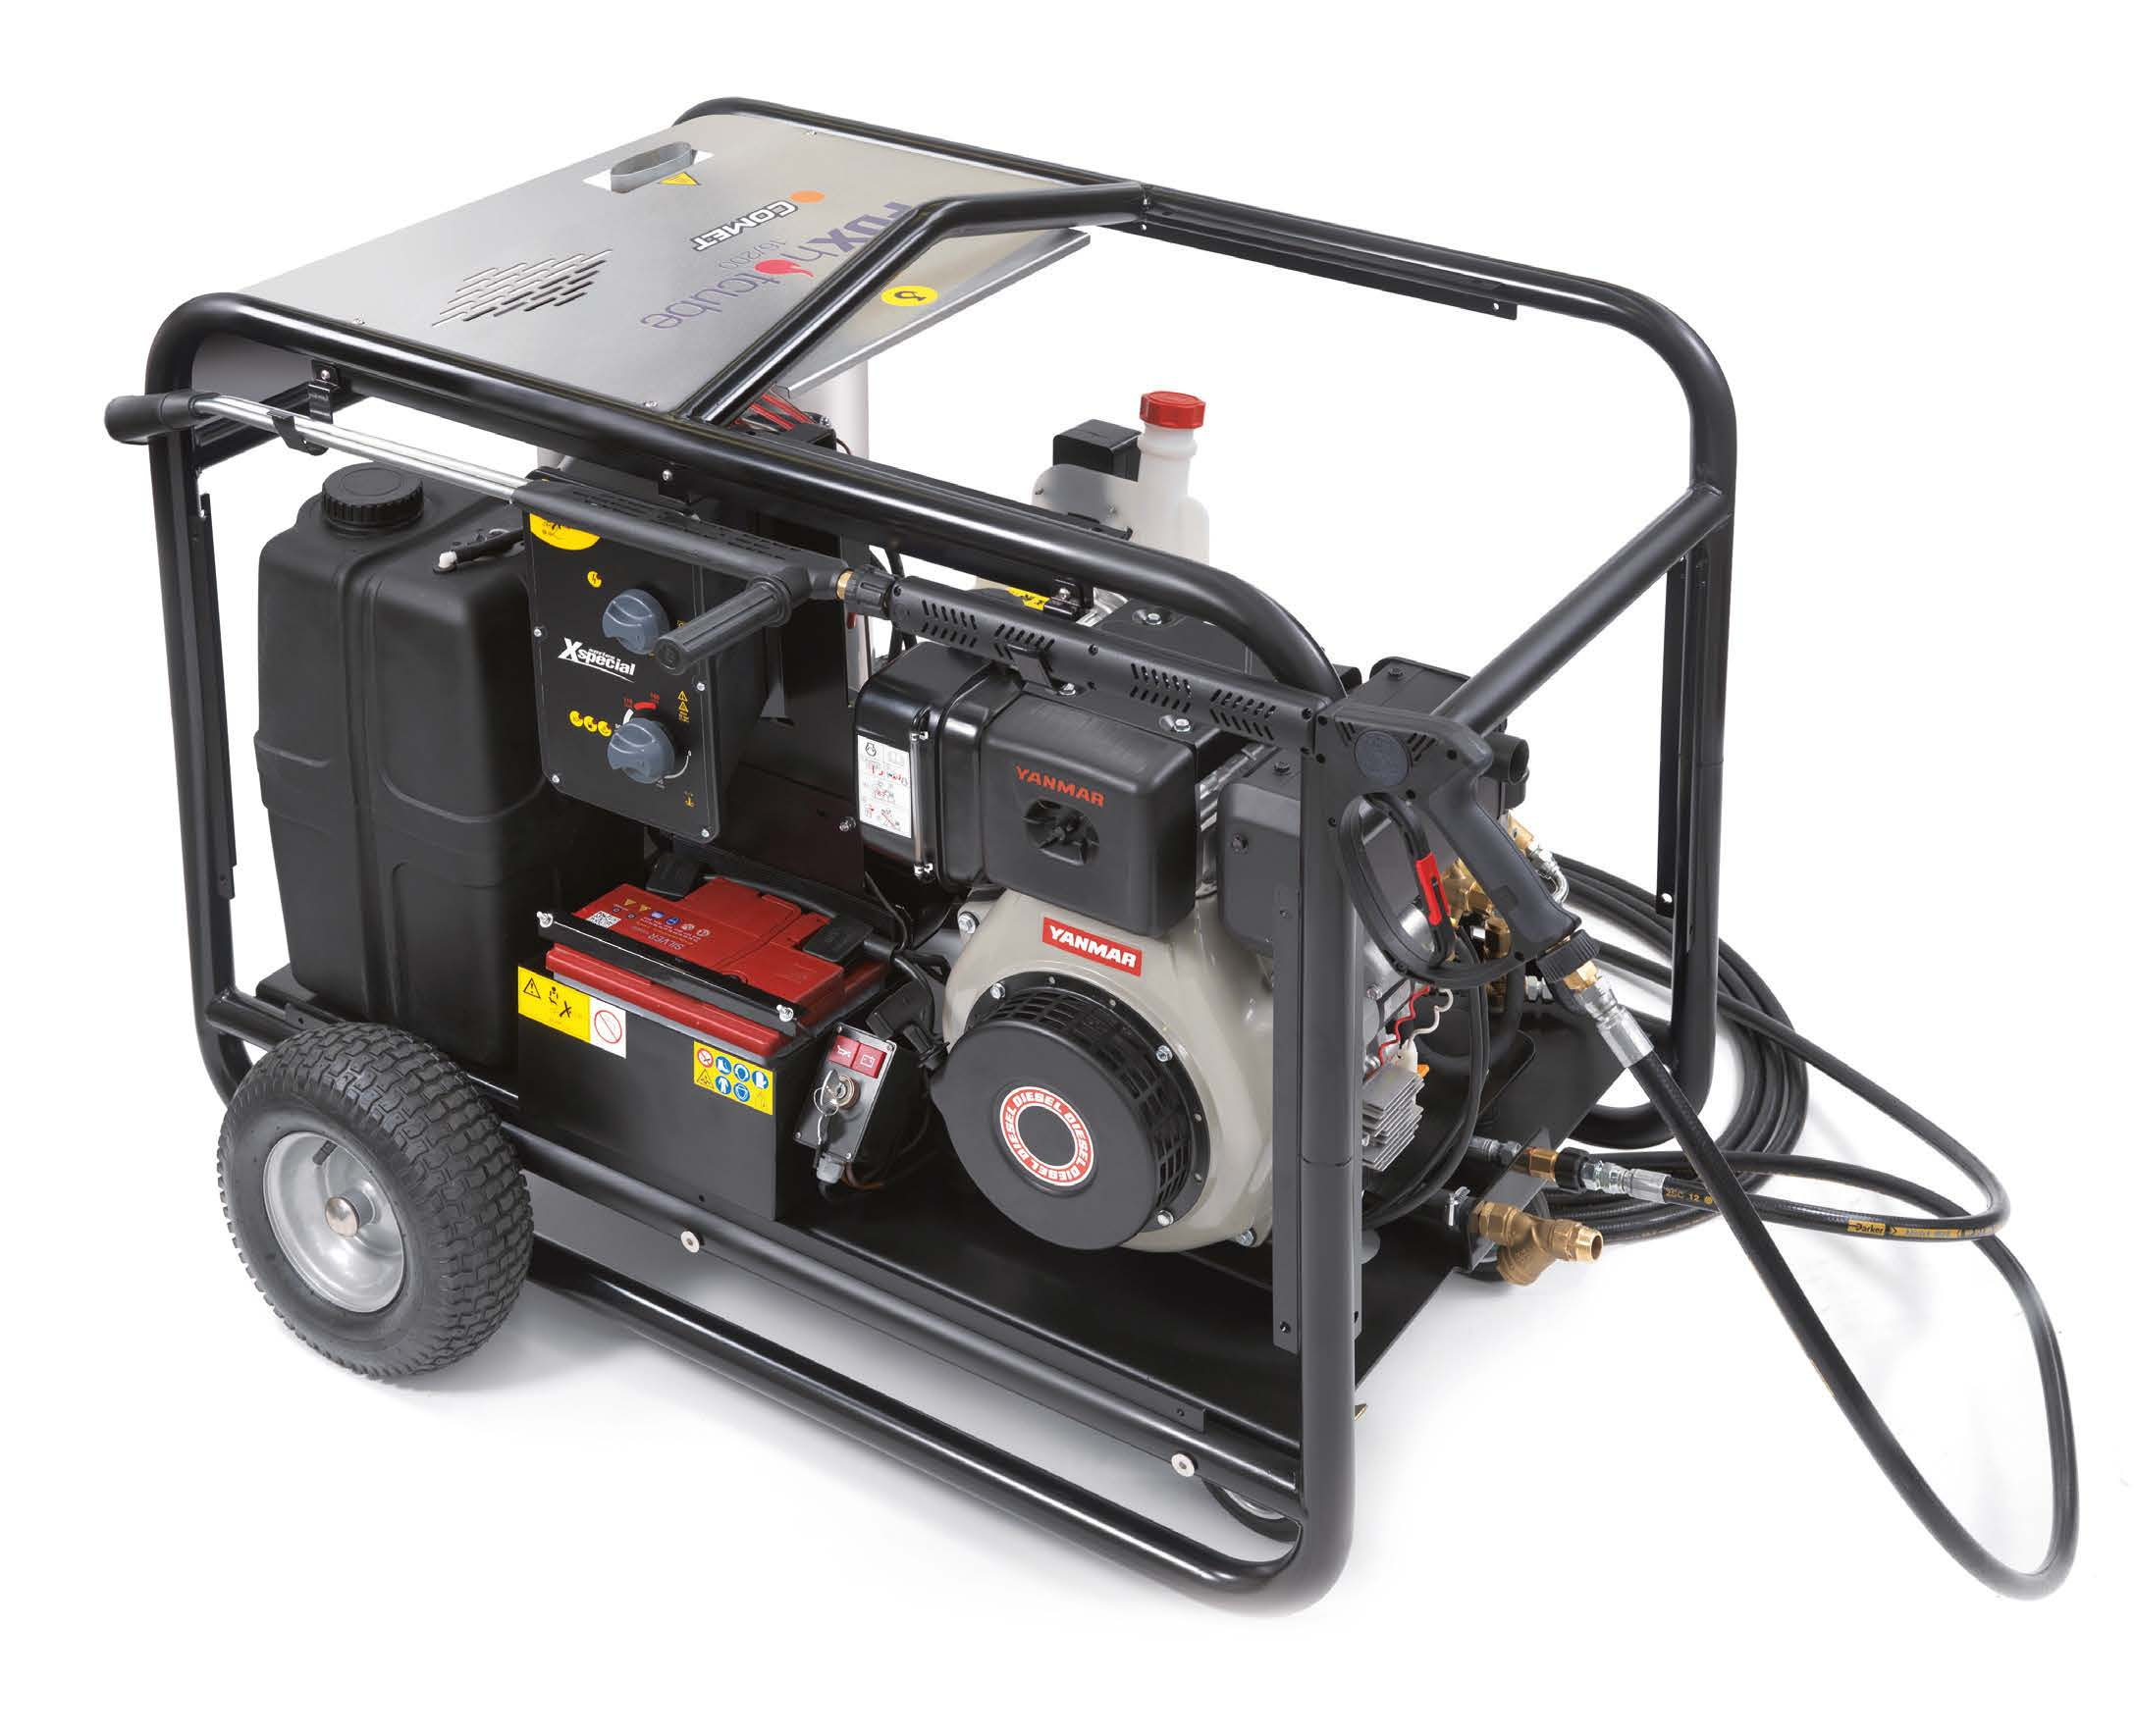 fdx hot cube pressure washers Comet